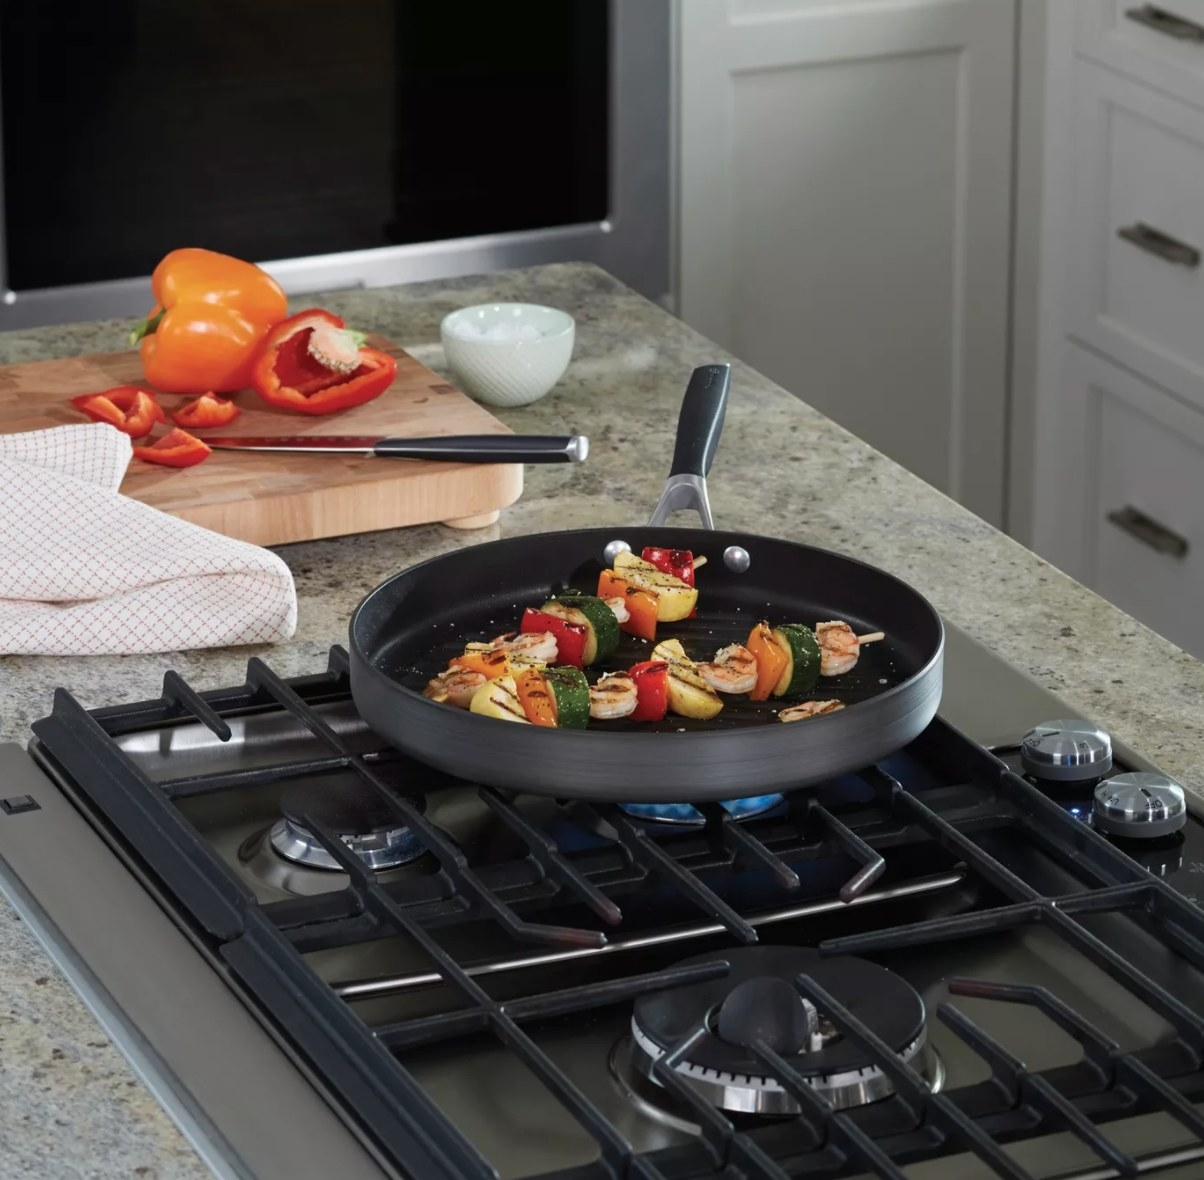 The grill pan being used to cook kabobs